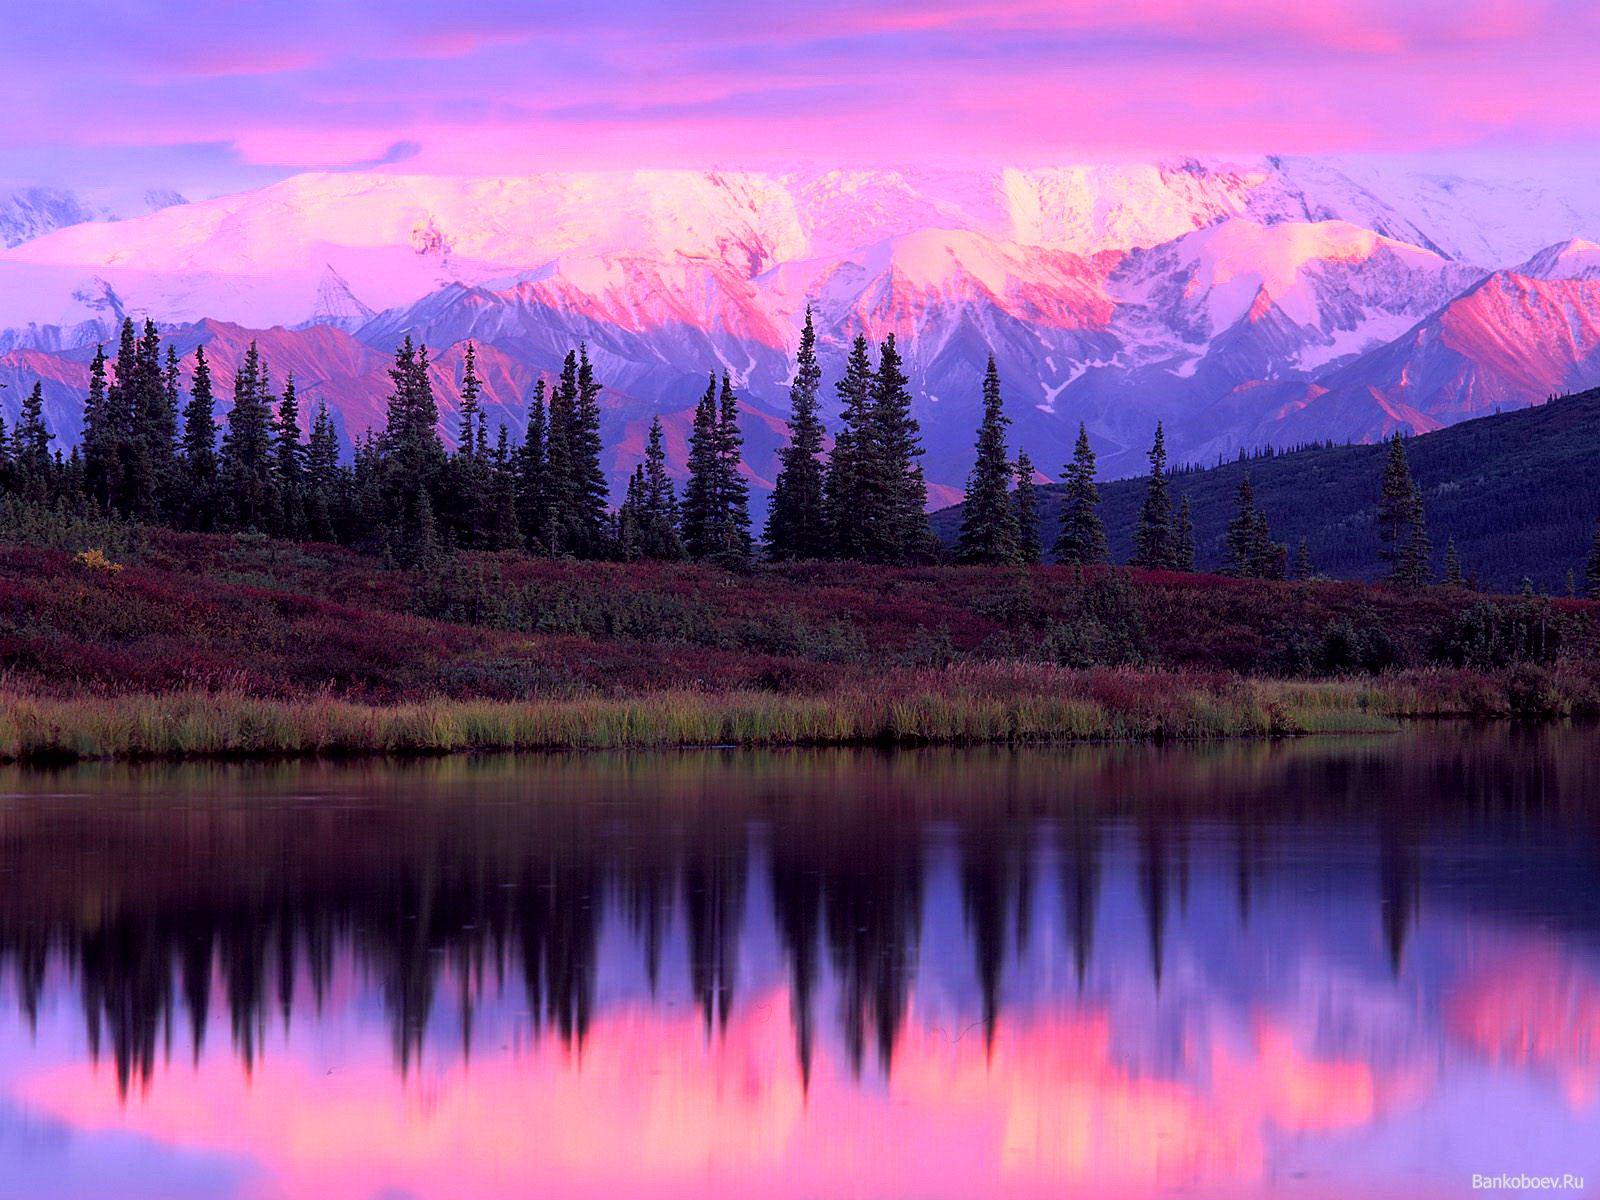 Hq paisaje rosa 1280 x 1024 wallpapers papel pintado so lovely pinterest alaska - Papel pintado paisaje ...